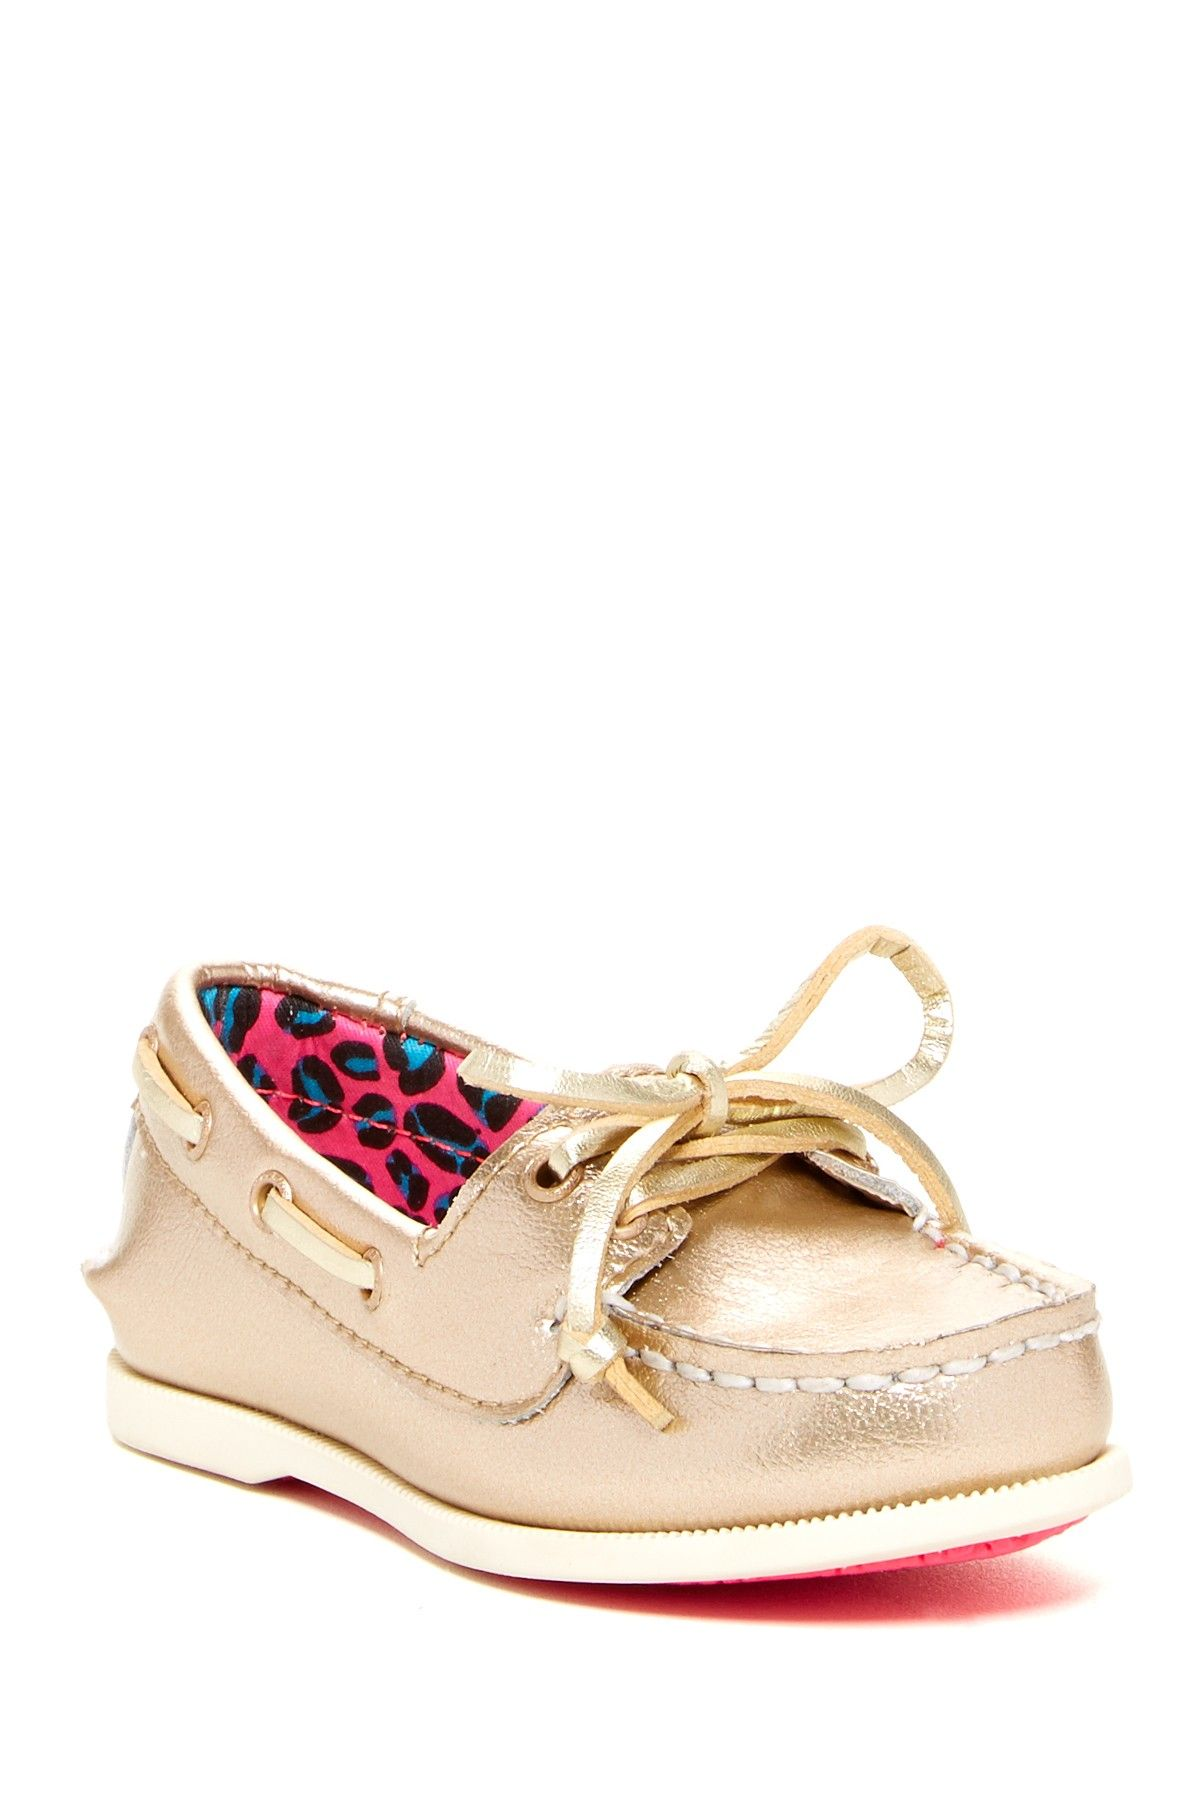 Sperry Audrey Boat Shoe Toddler & Little Kid